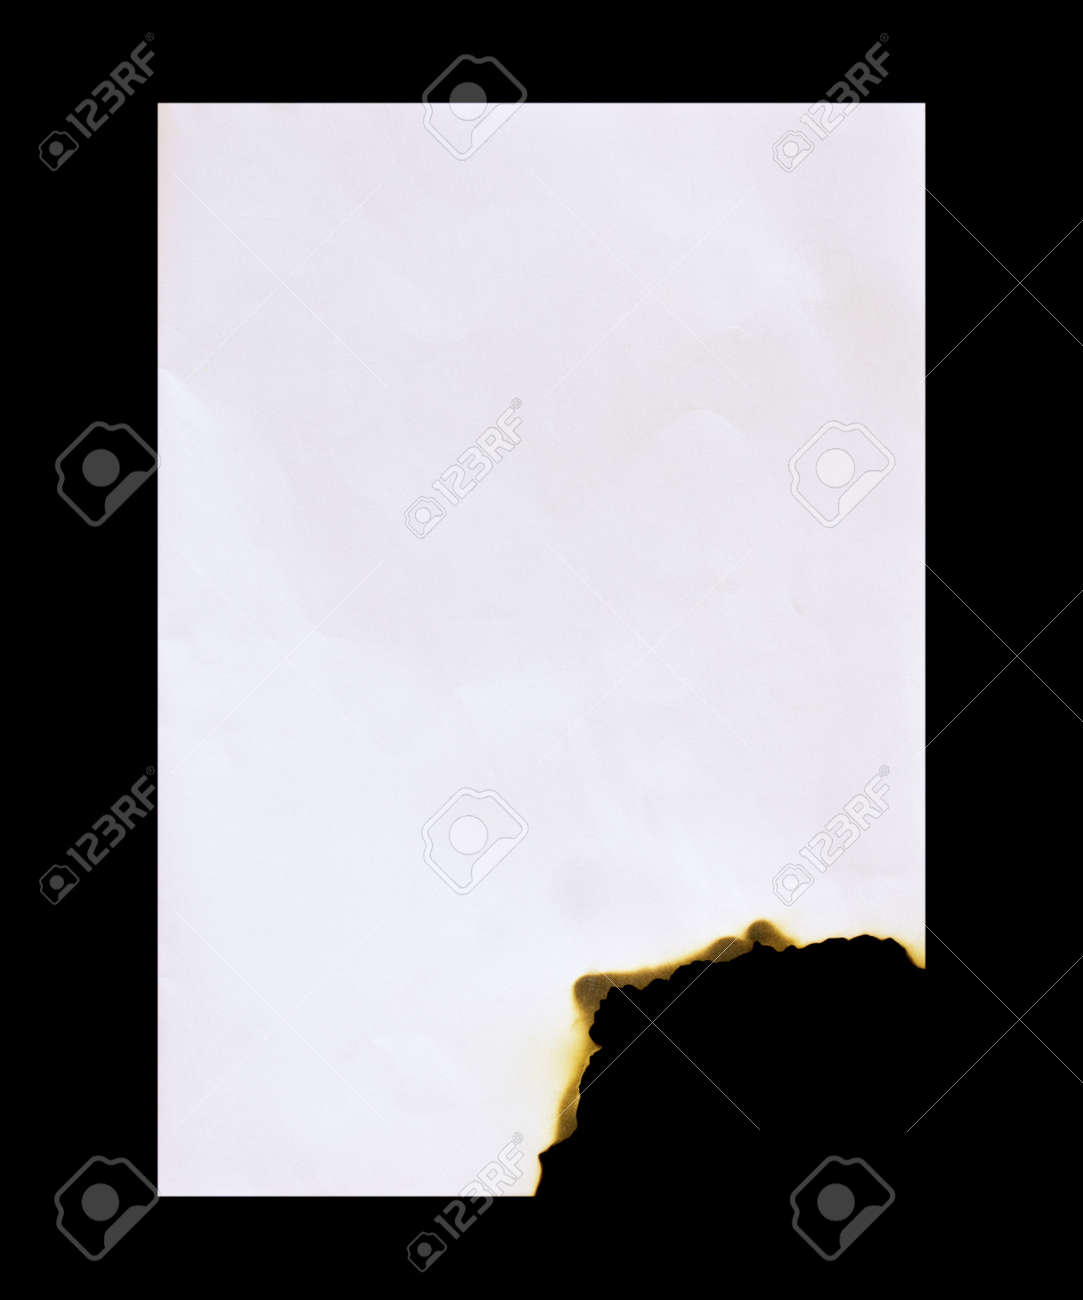 Burned paper on a black  background Stock Photo - 15889447